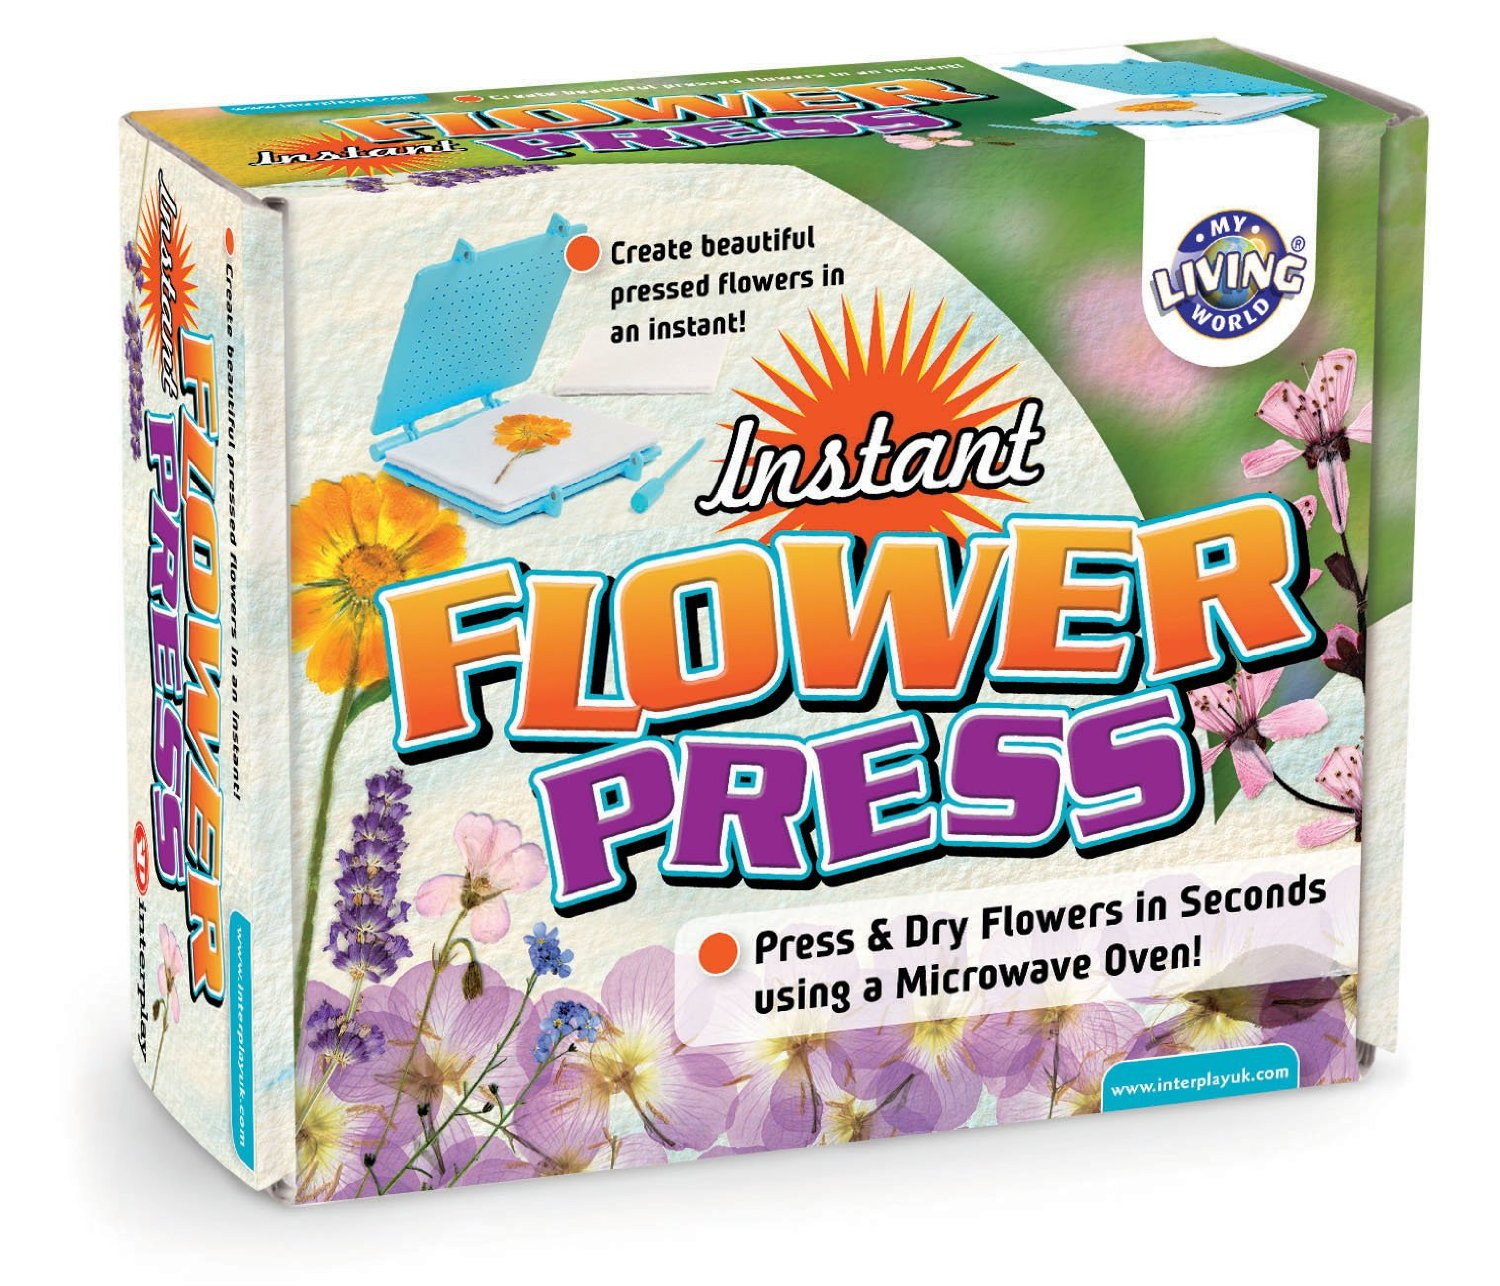 Interplay flower press